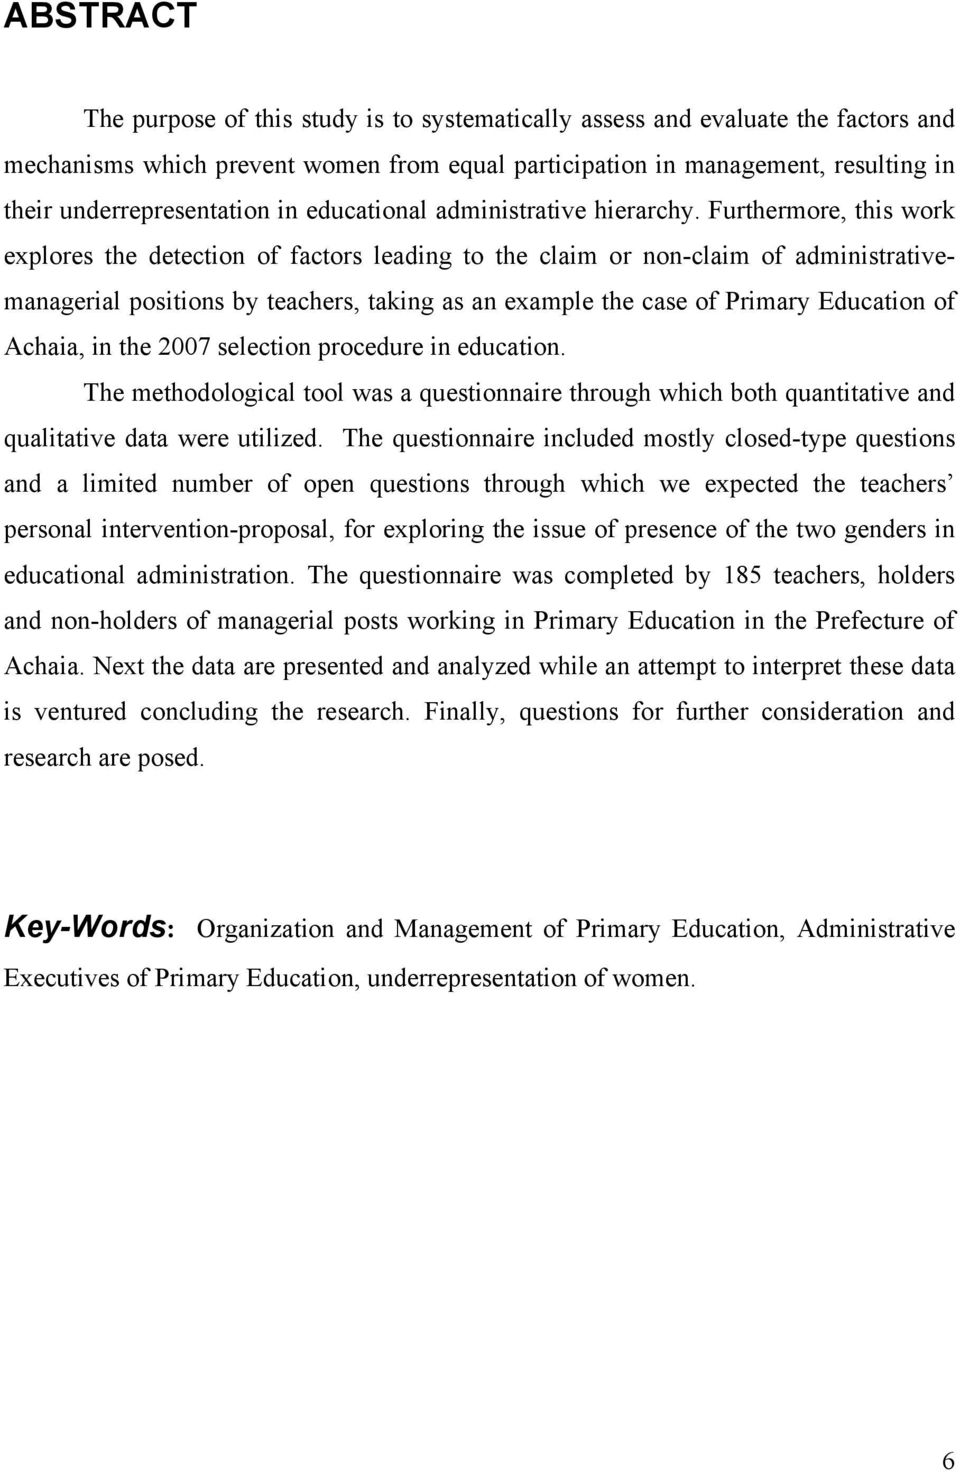 Furthermore, this work explores the detection of factors leading to the claim or non-claim of administrativemanagerial positions by teachers, taking as an example the case of Primary Education of